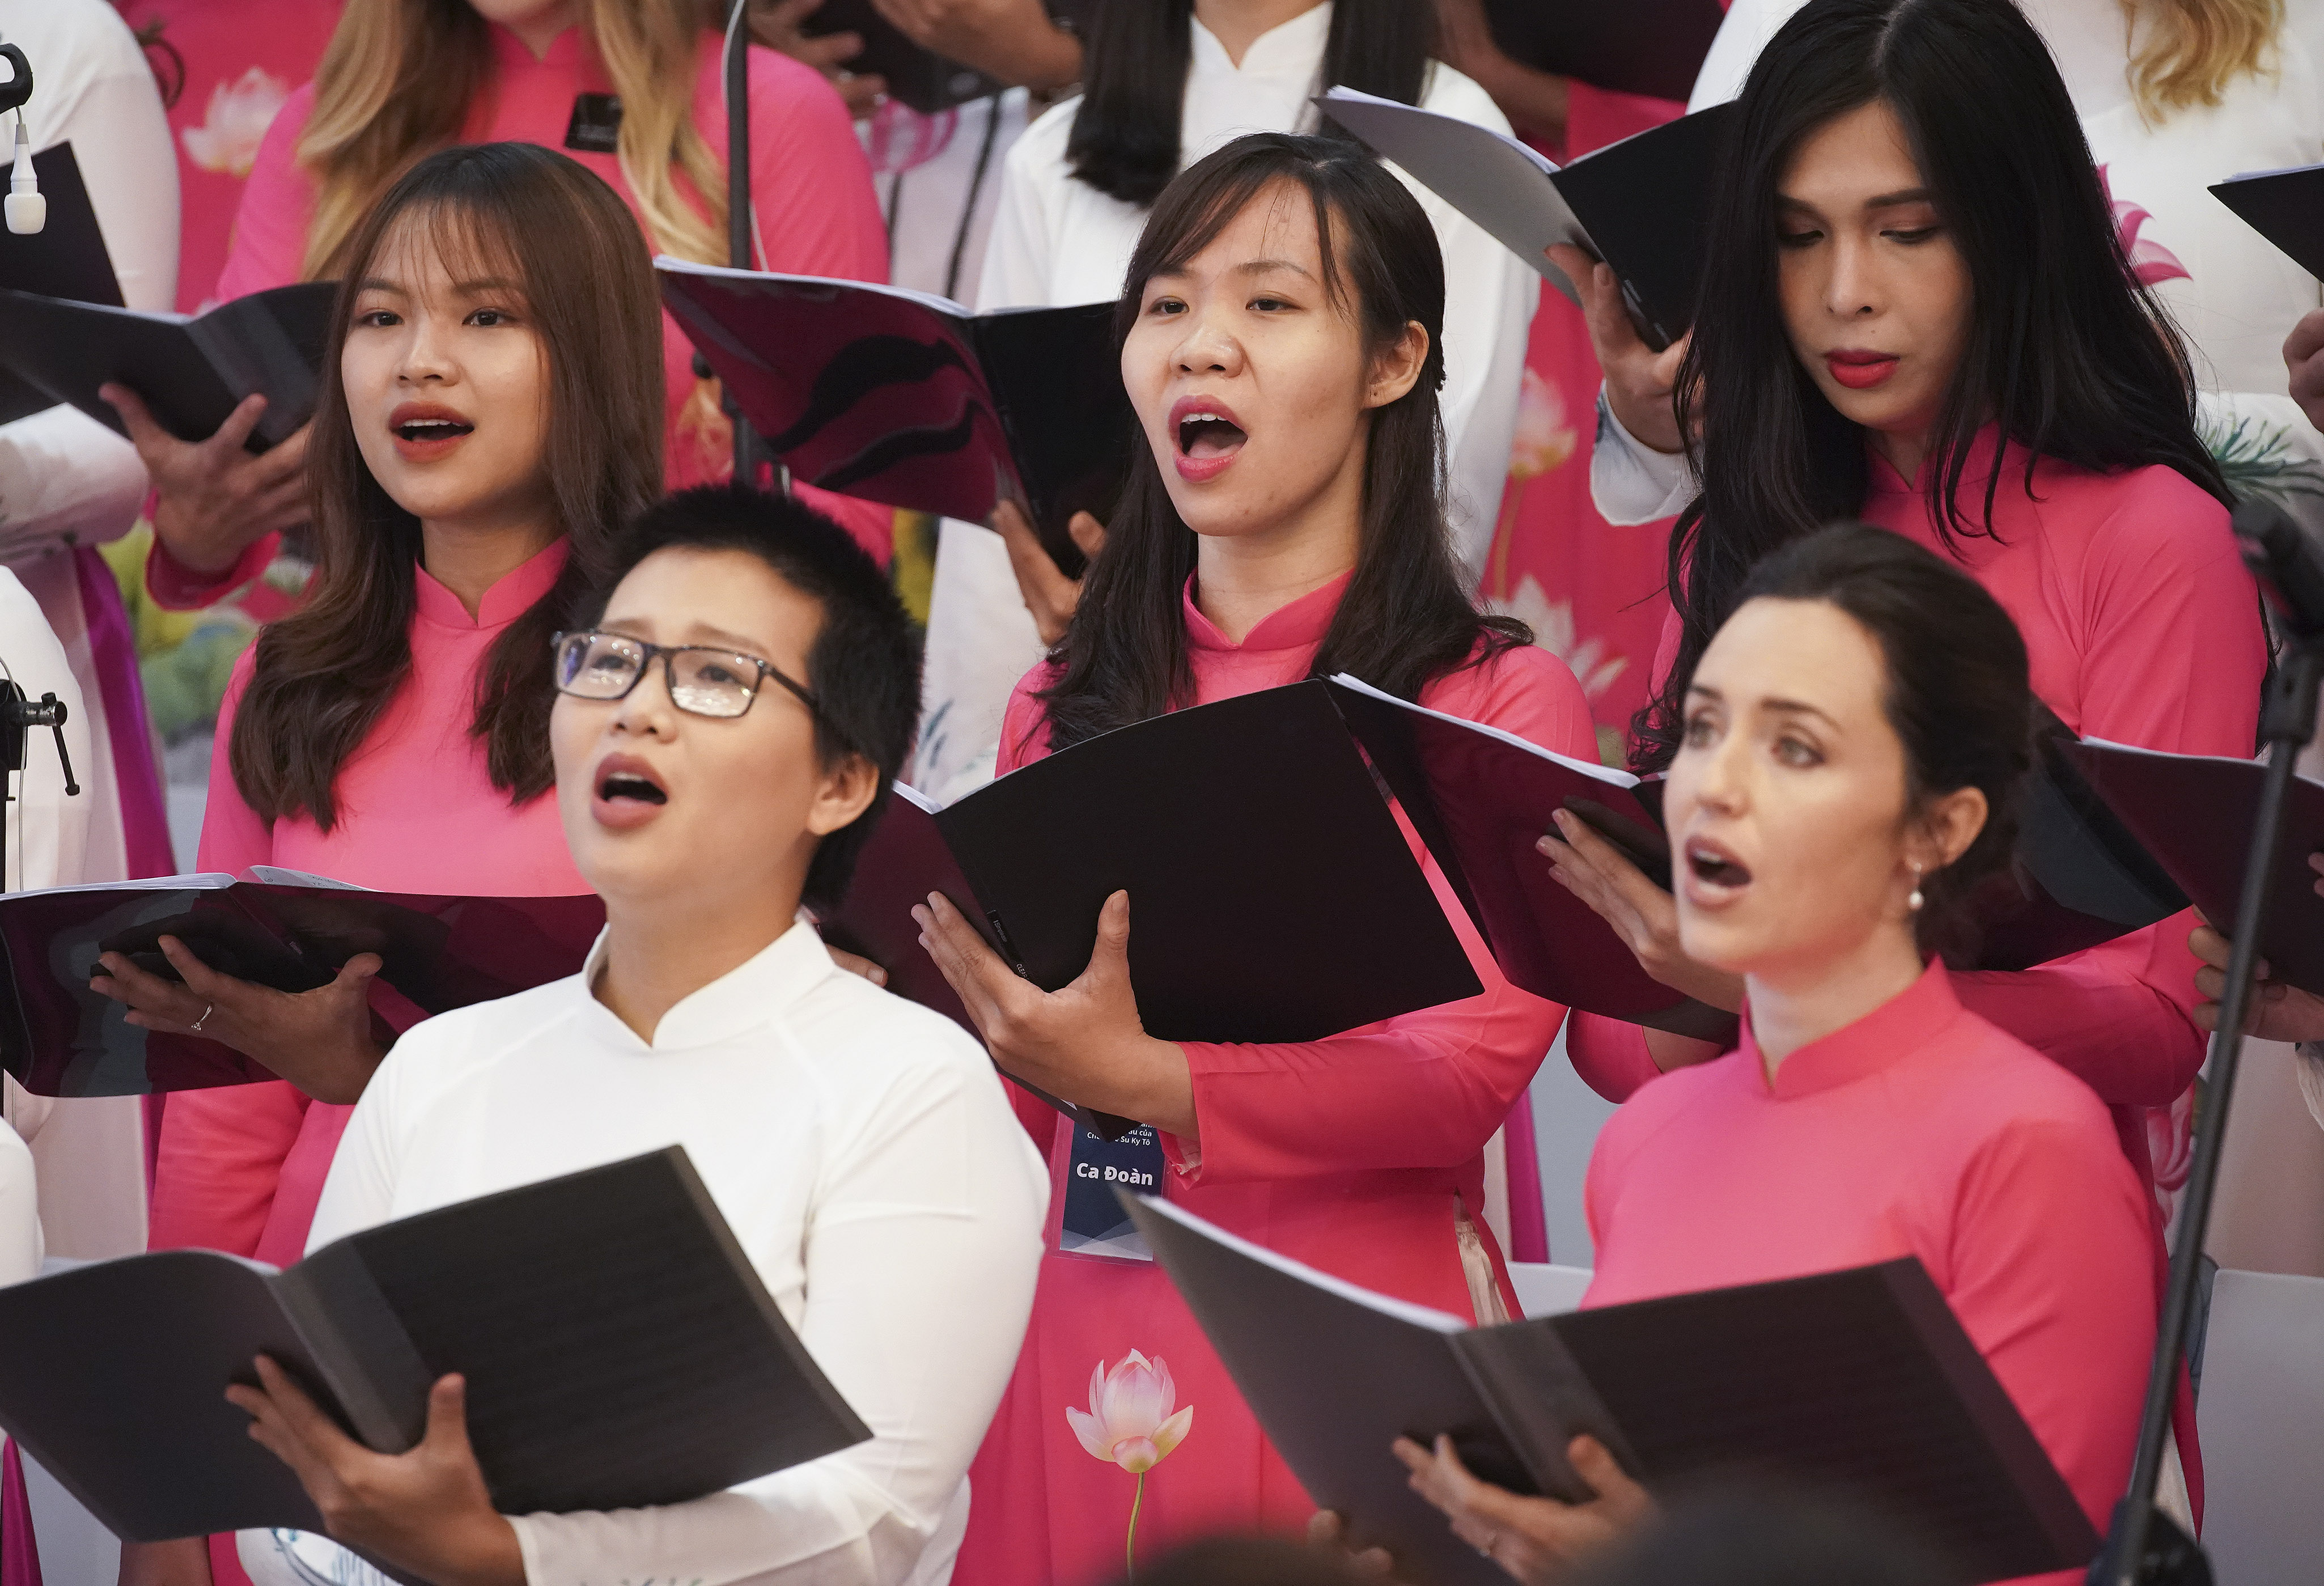 A choir sing during a devotional with President Russell M. Nelson and Elder D. Todd Christofferson of the Quorum of the Twelve Apostles in Ho Chi Minh City, Vietnam, on Nov. 18, 2019.